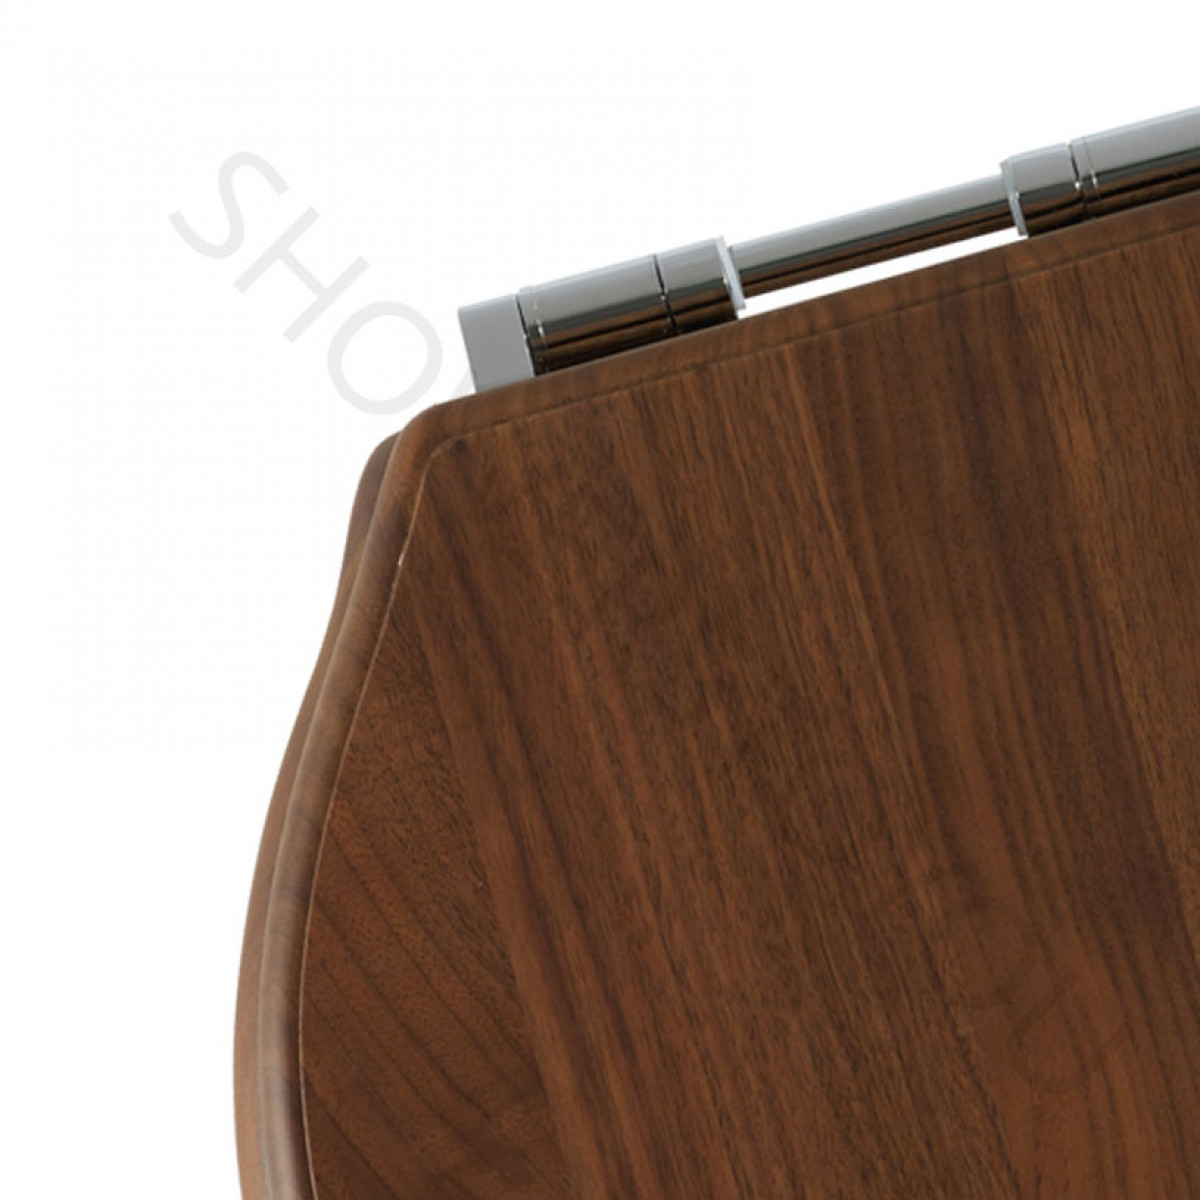 Roper Rhodes Greenwich Solid Wood Walnut Soft Close Toilet Seat